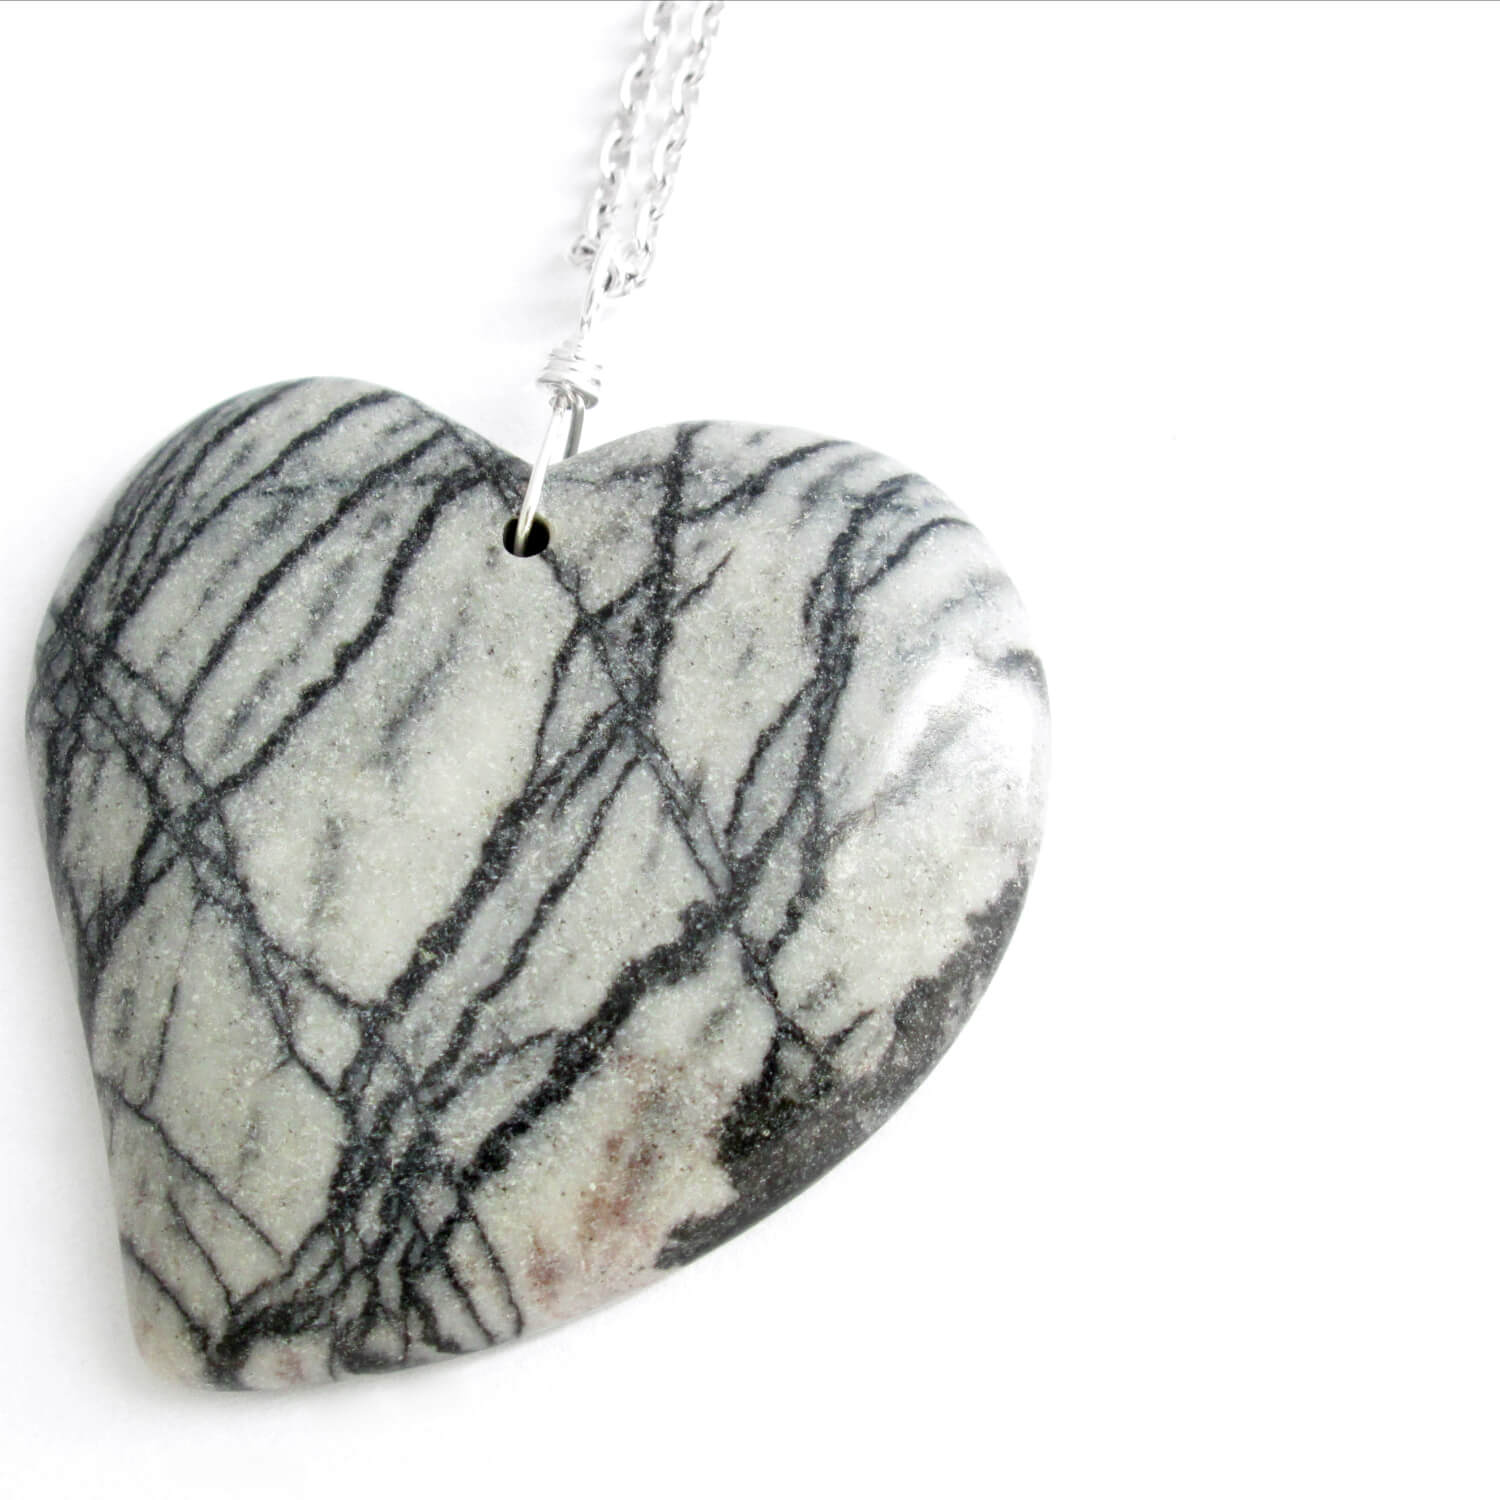 Zebra Jasper Pendant, Heart Shaped Stone